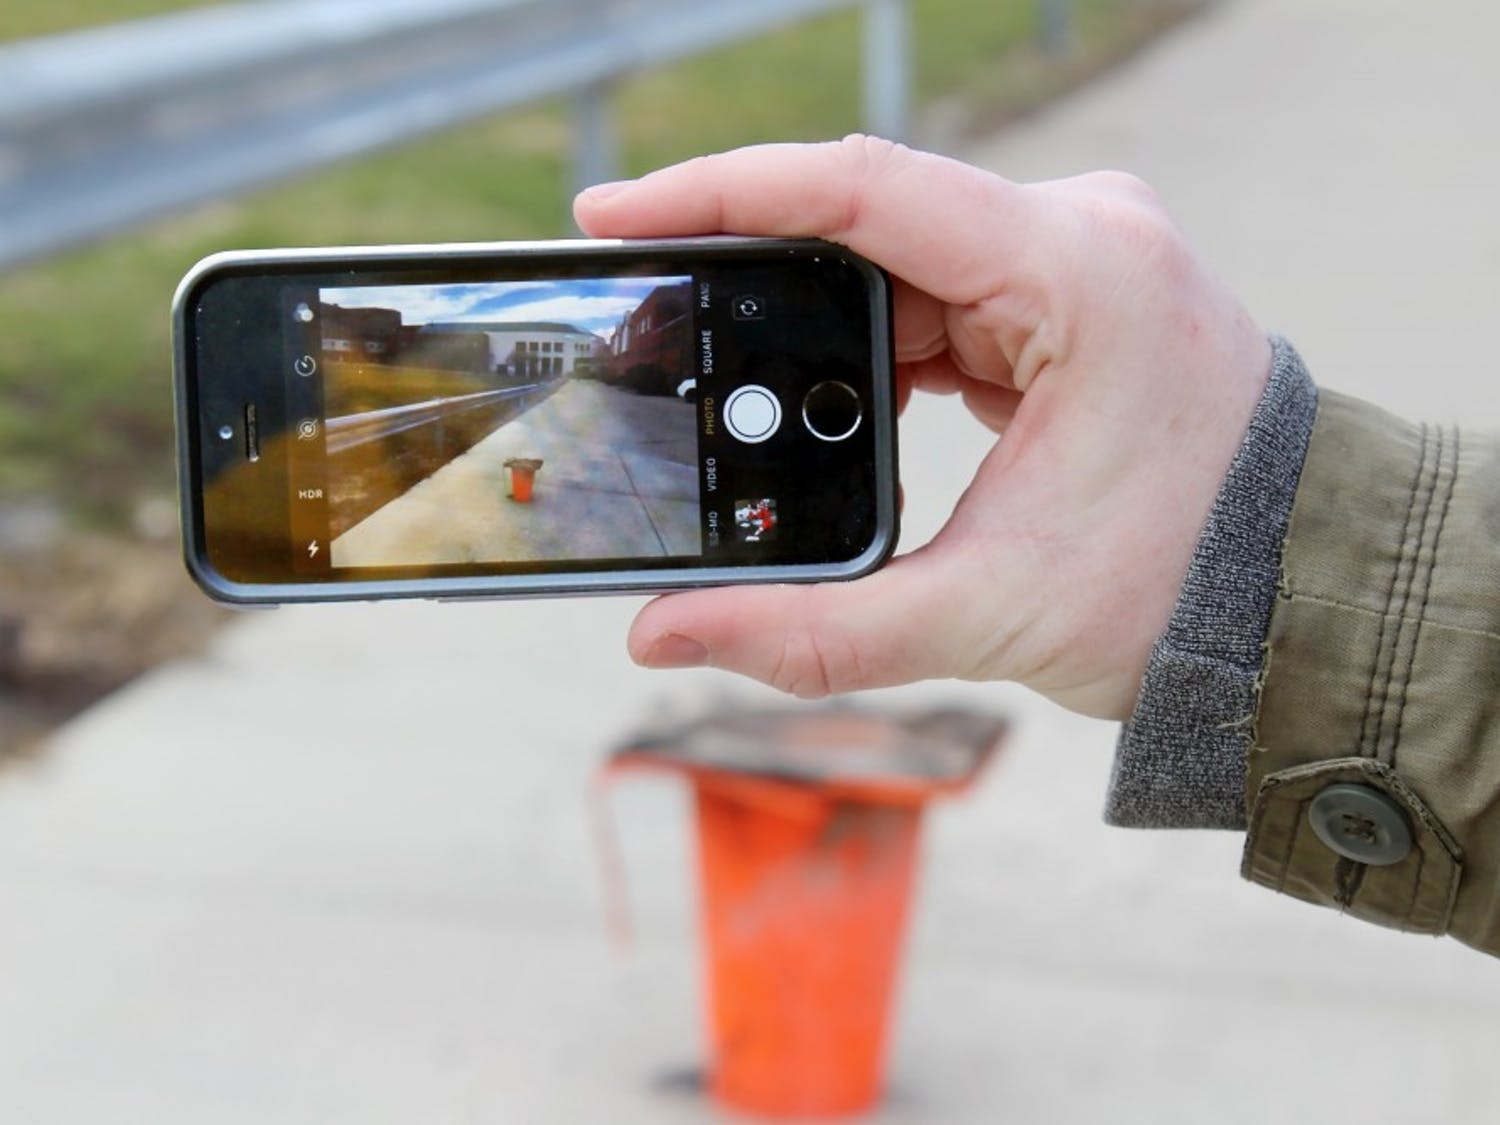 The upside-down cone by the Commons has been posted several times in the Facebook group Cone Spotting. The group is dedicated to taking and posting pictures of cones.